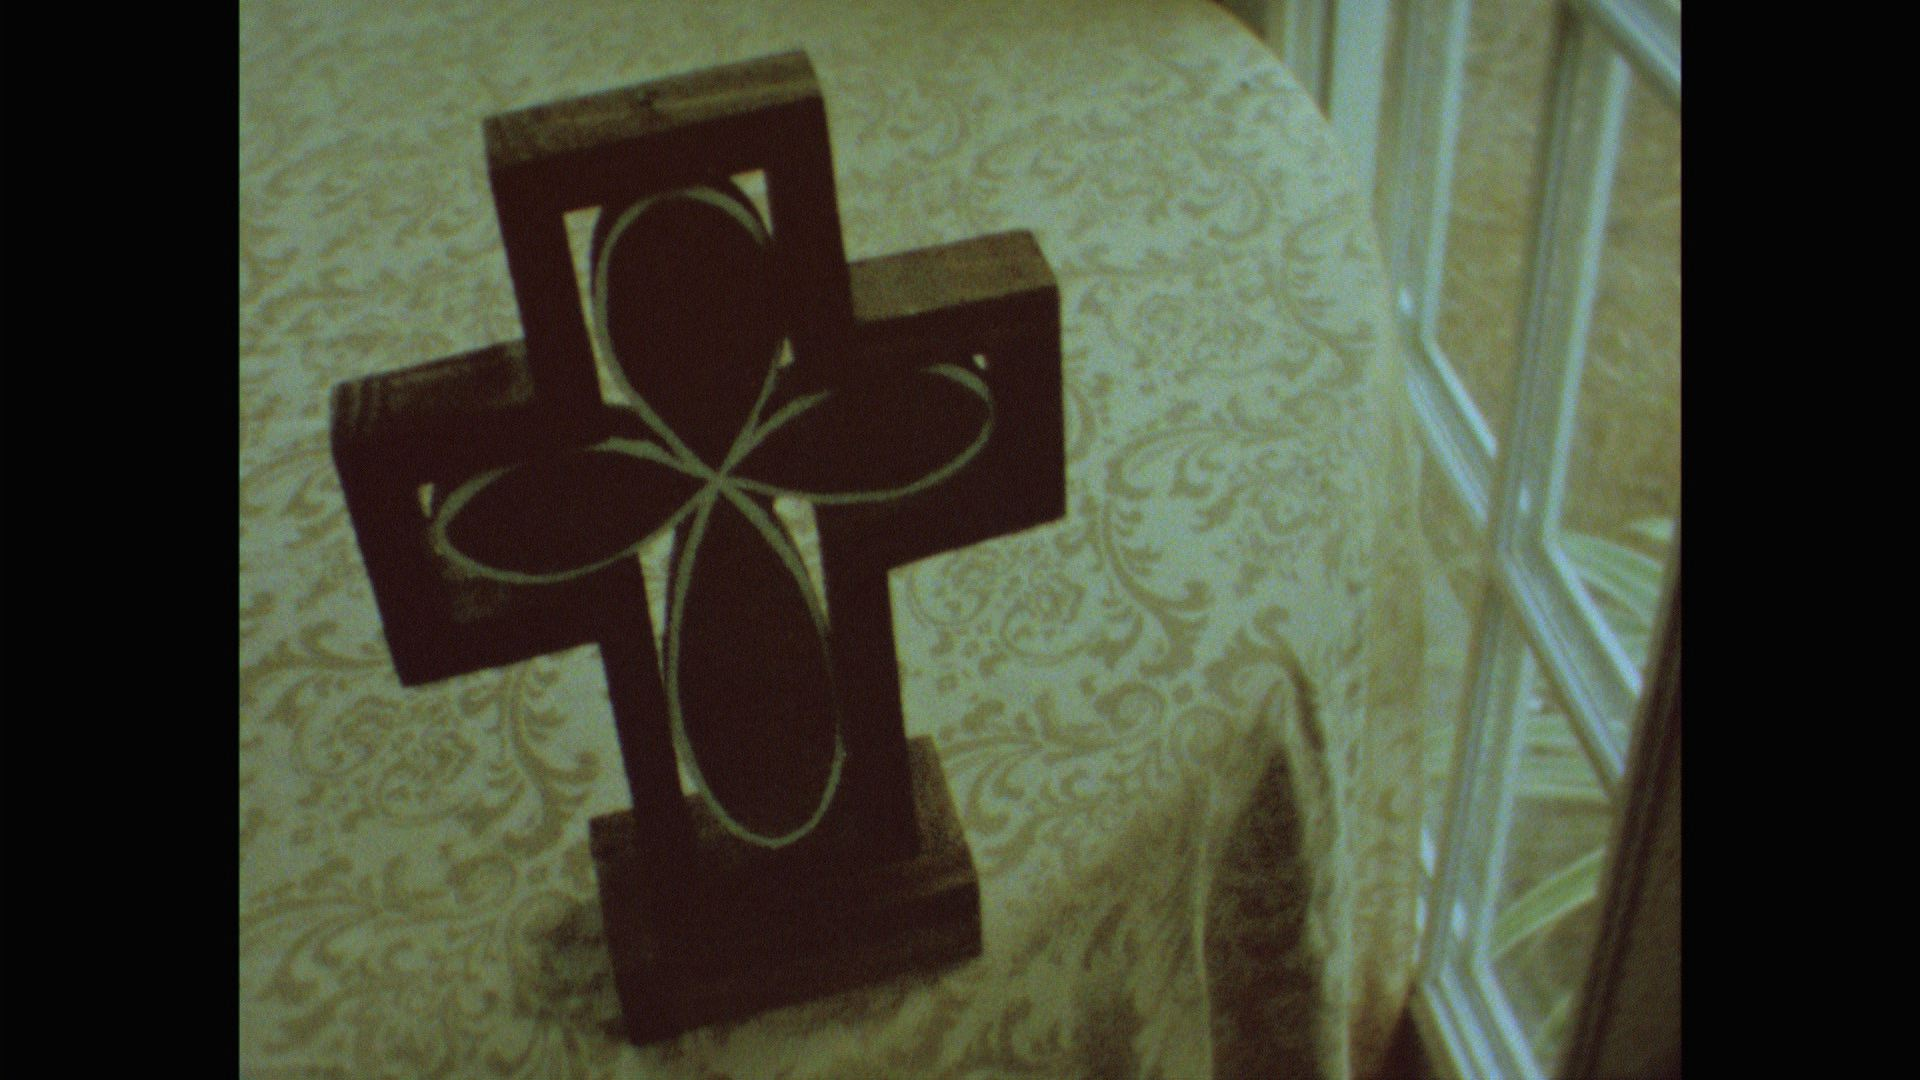 Russ created this cross to put together during their ceremony.